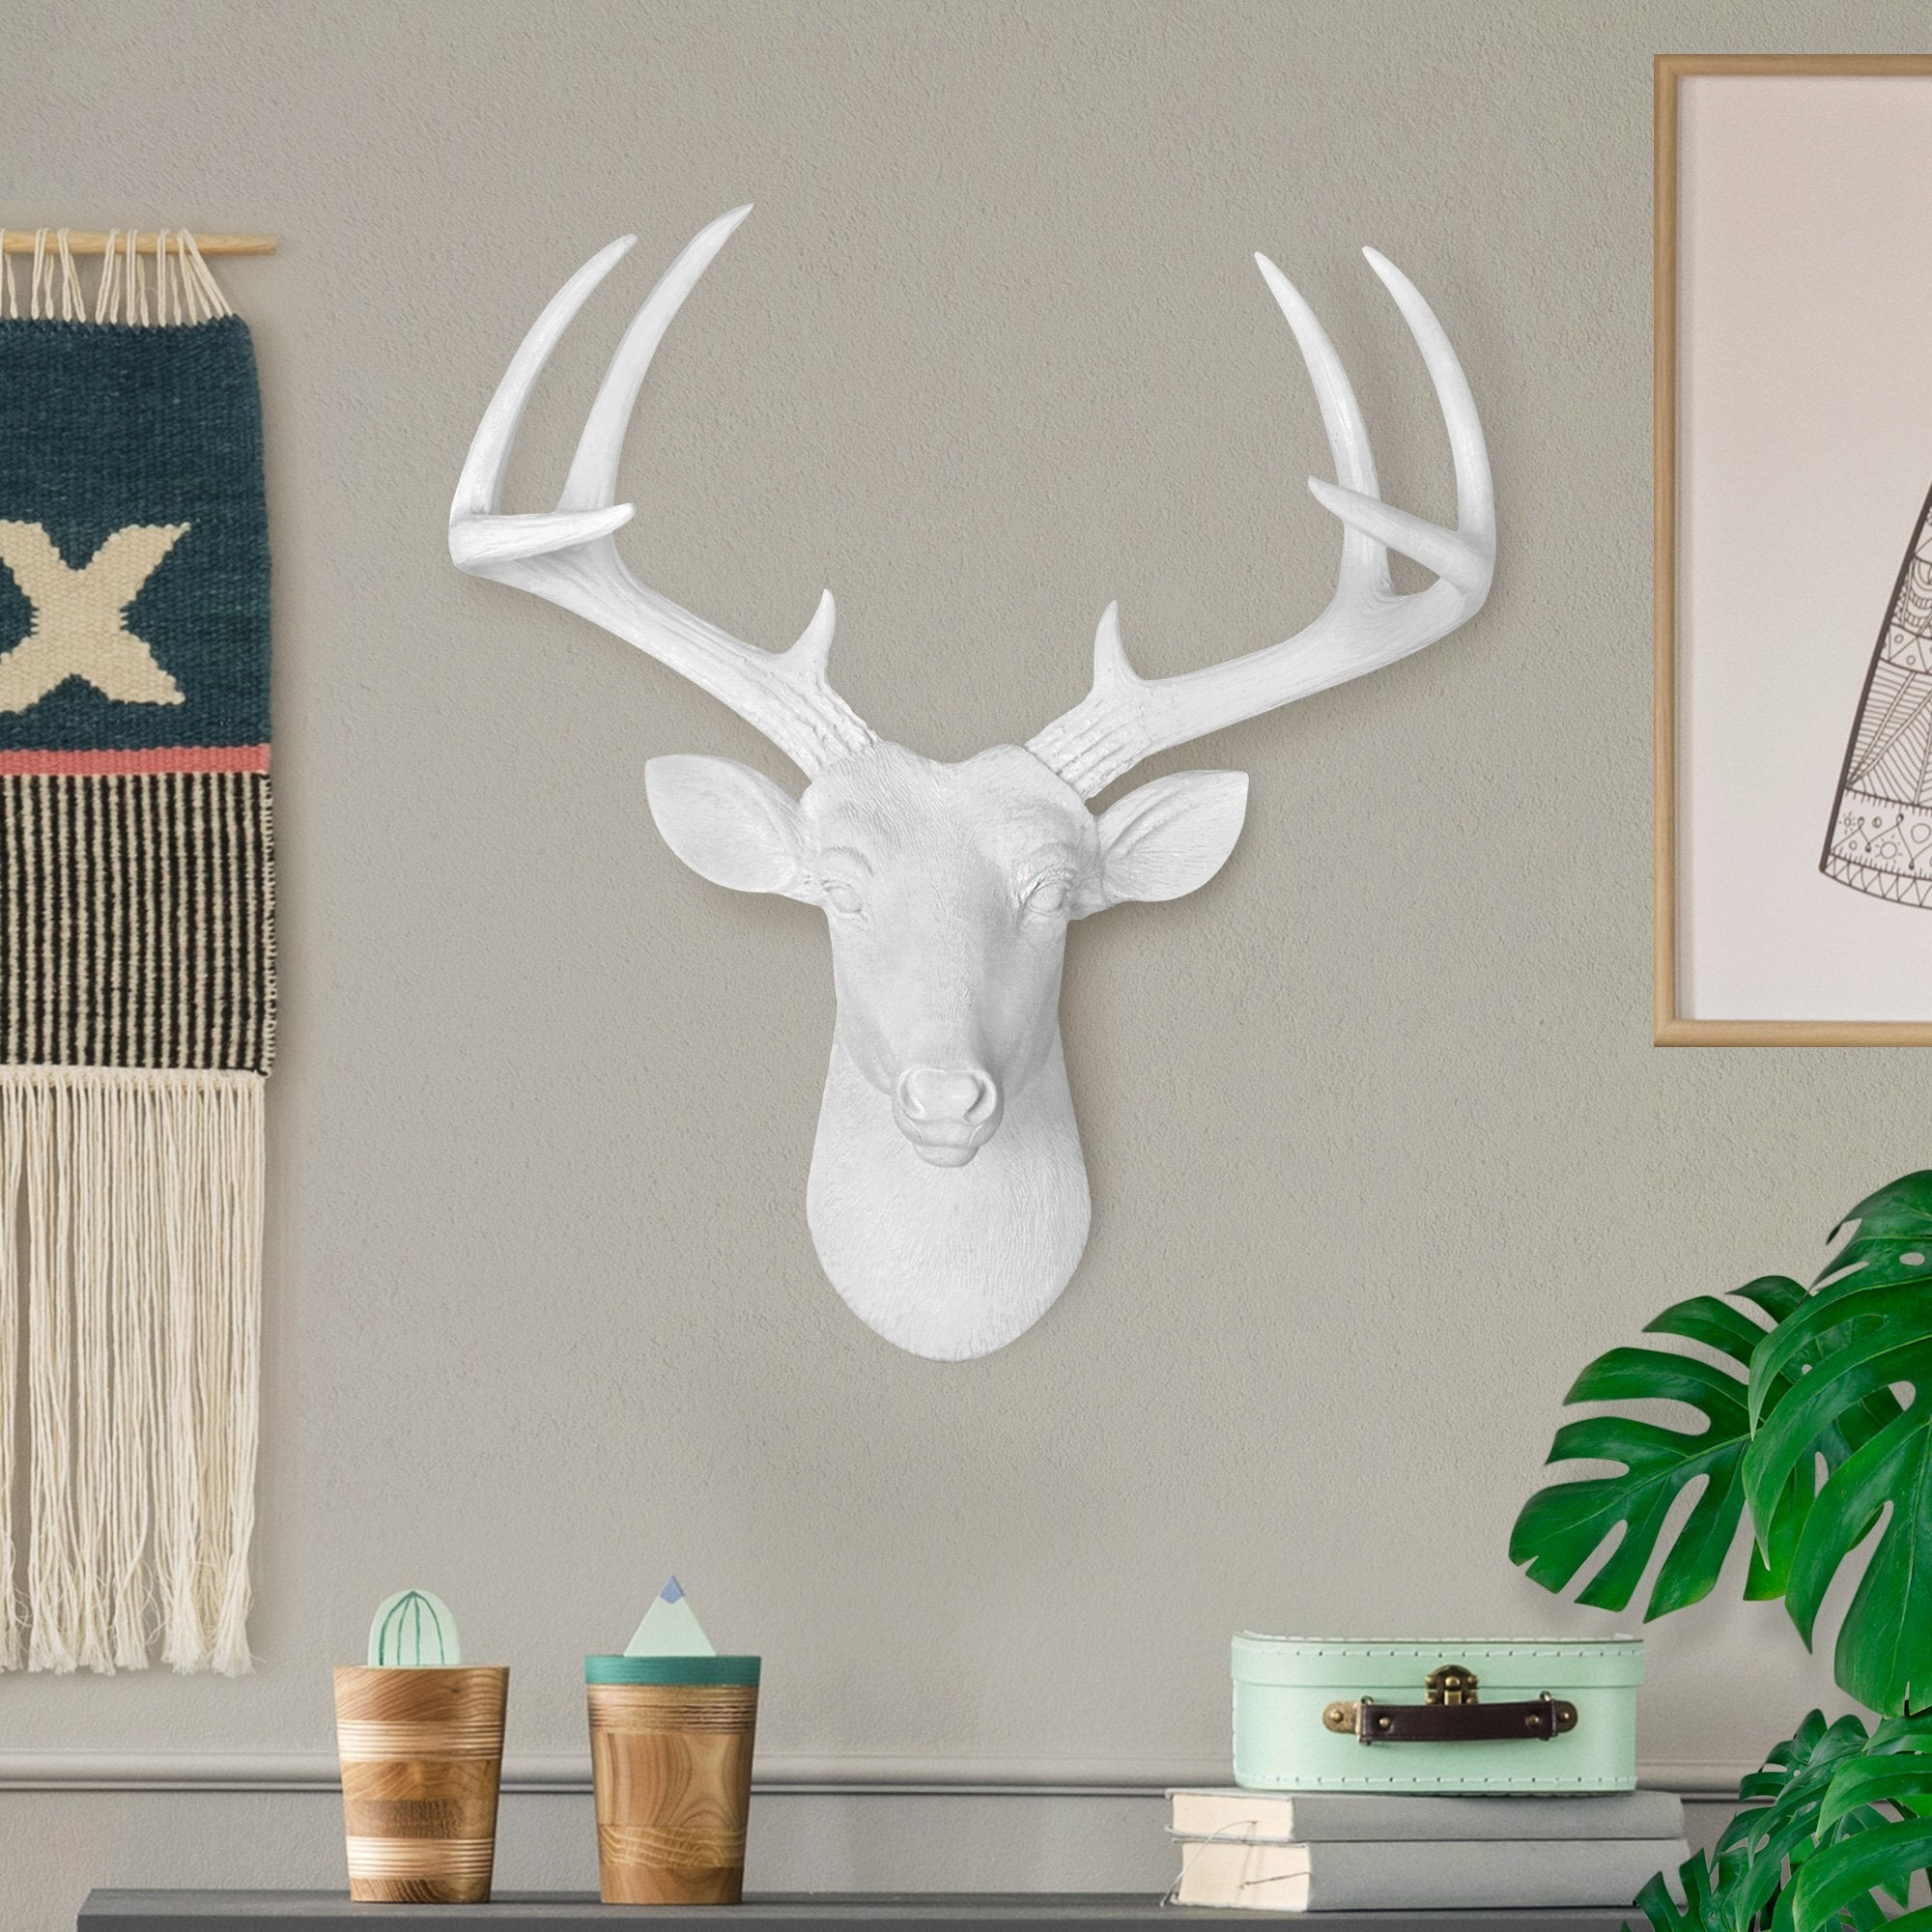 Faux deer, faux deer head, fake deer head, animal head wall mount, farmhouse decor